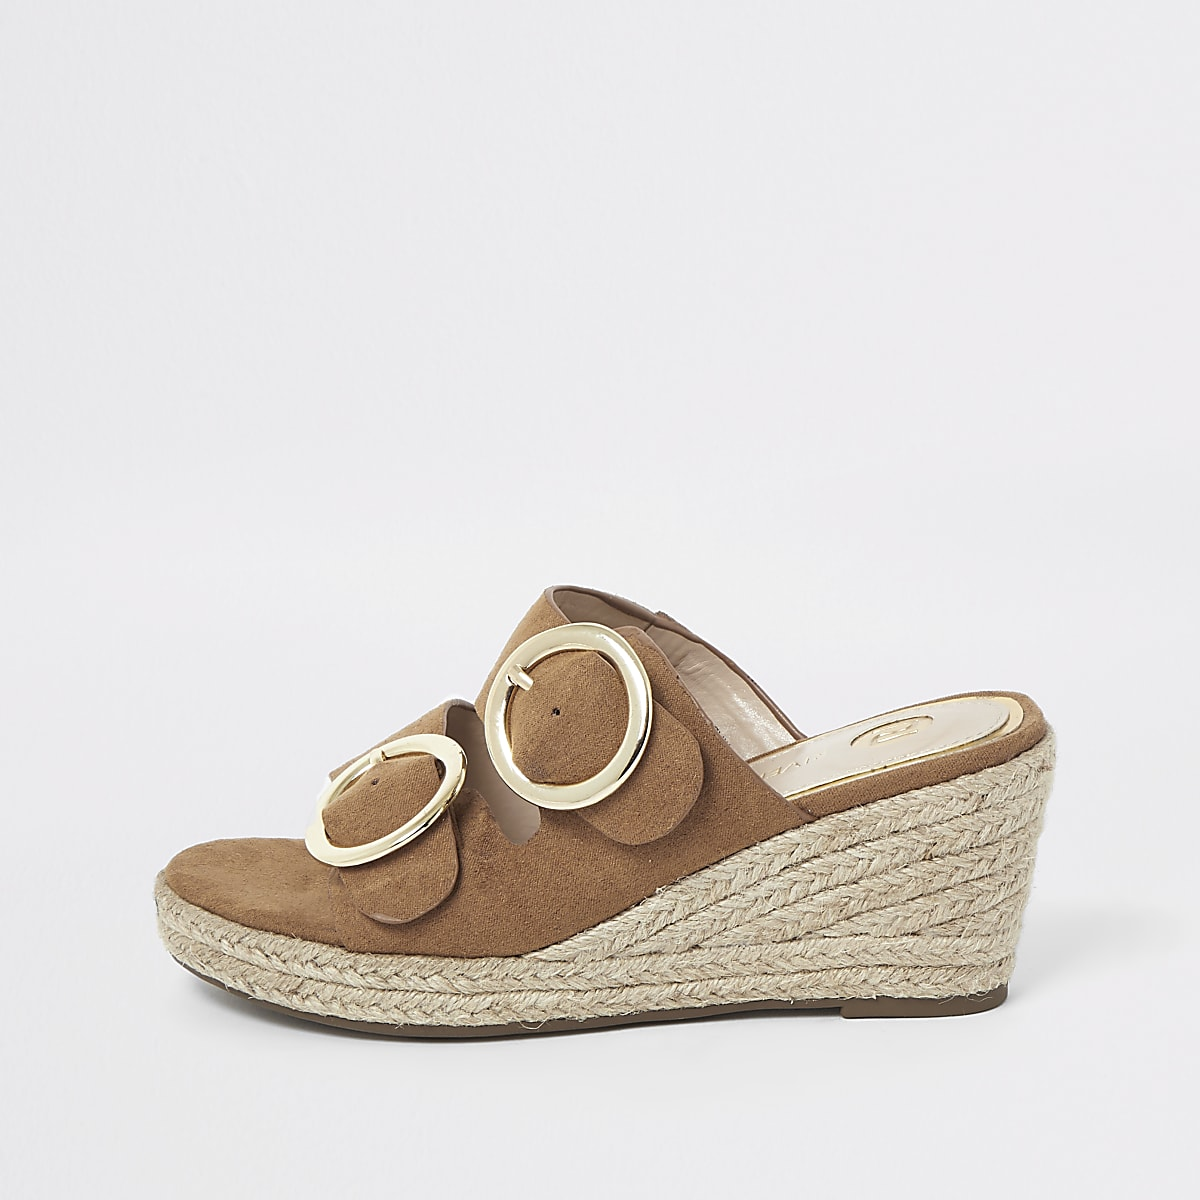 Girls light brown espadrille mule wedges